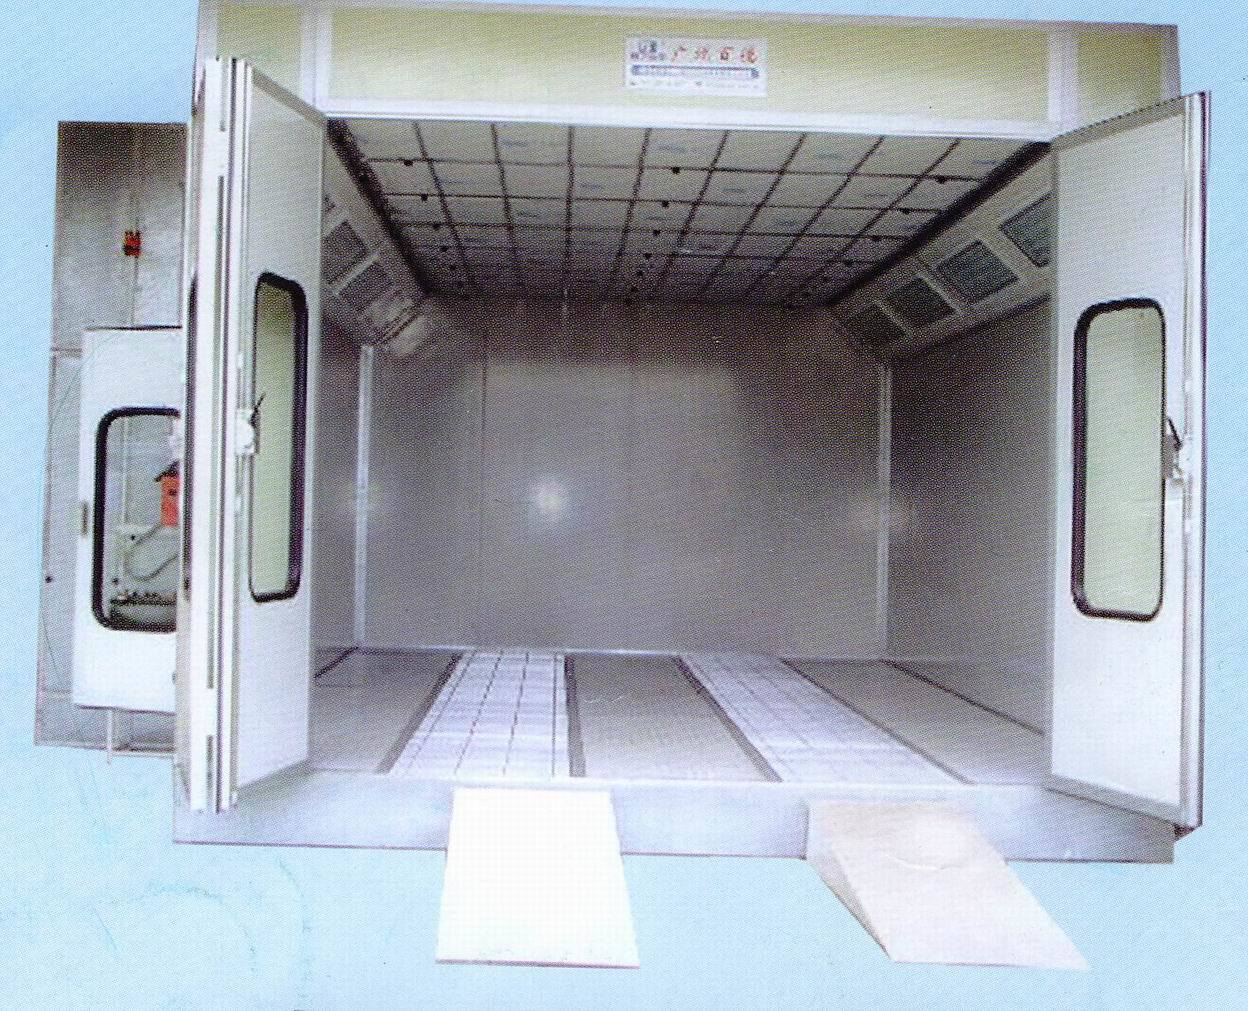 Paint Booth Spray Booth Industrial Paint Oven